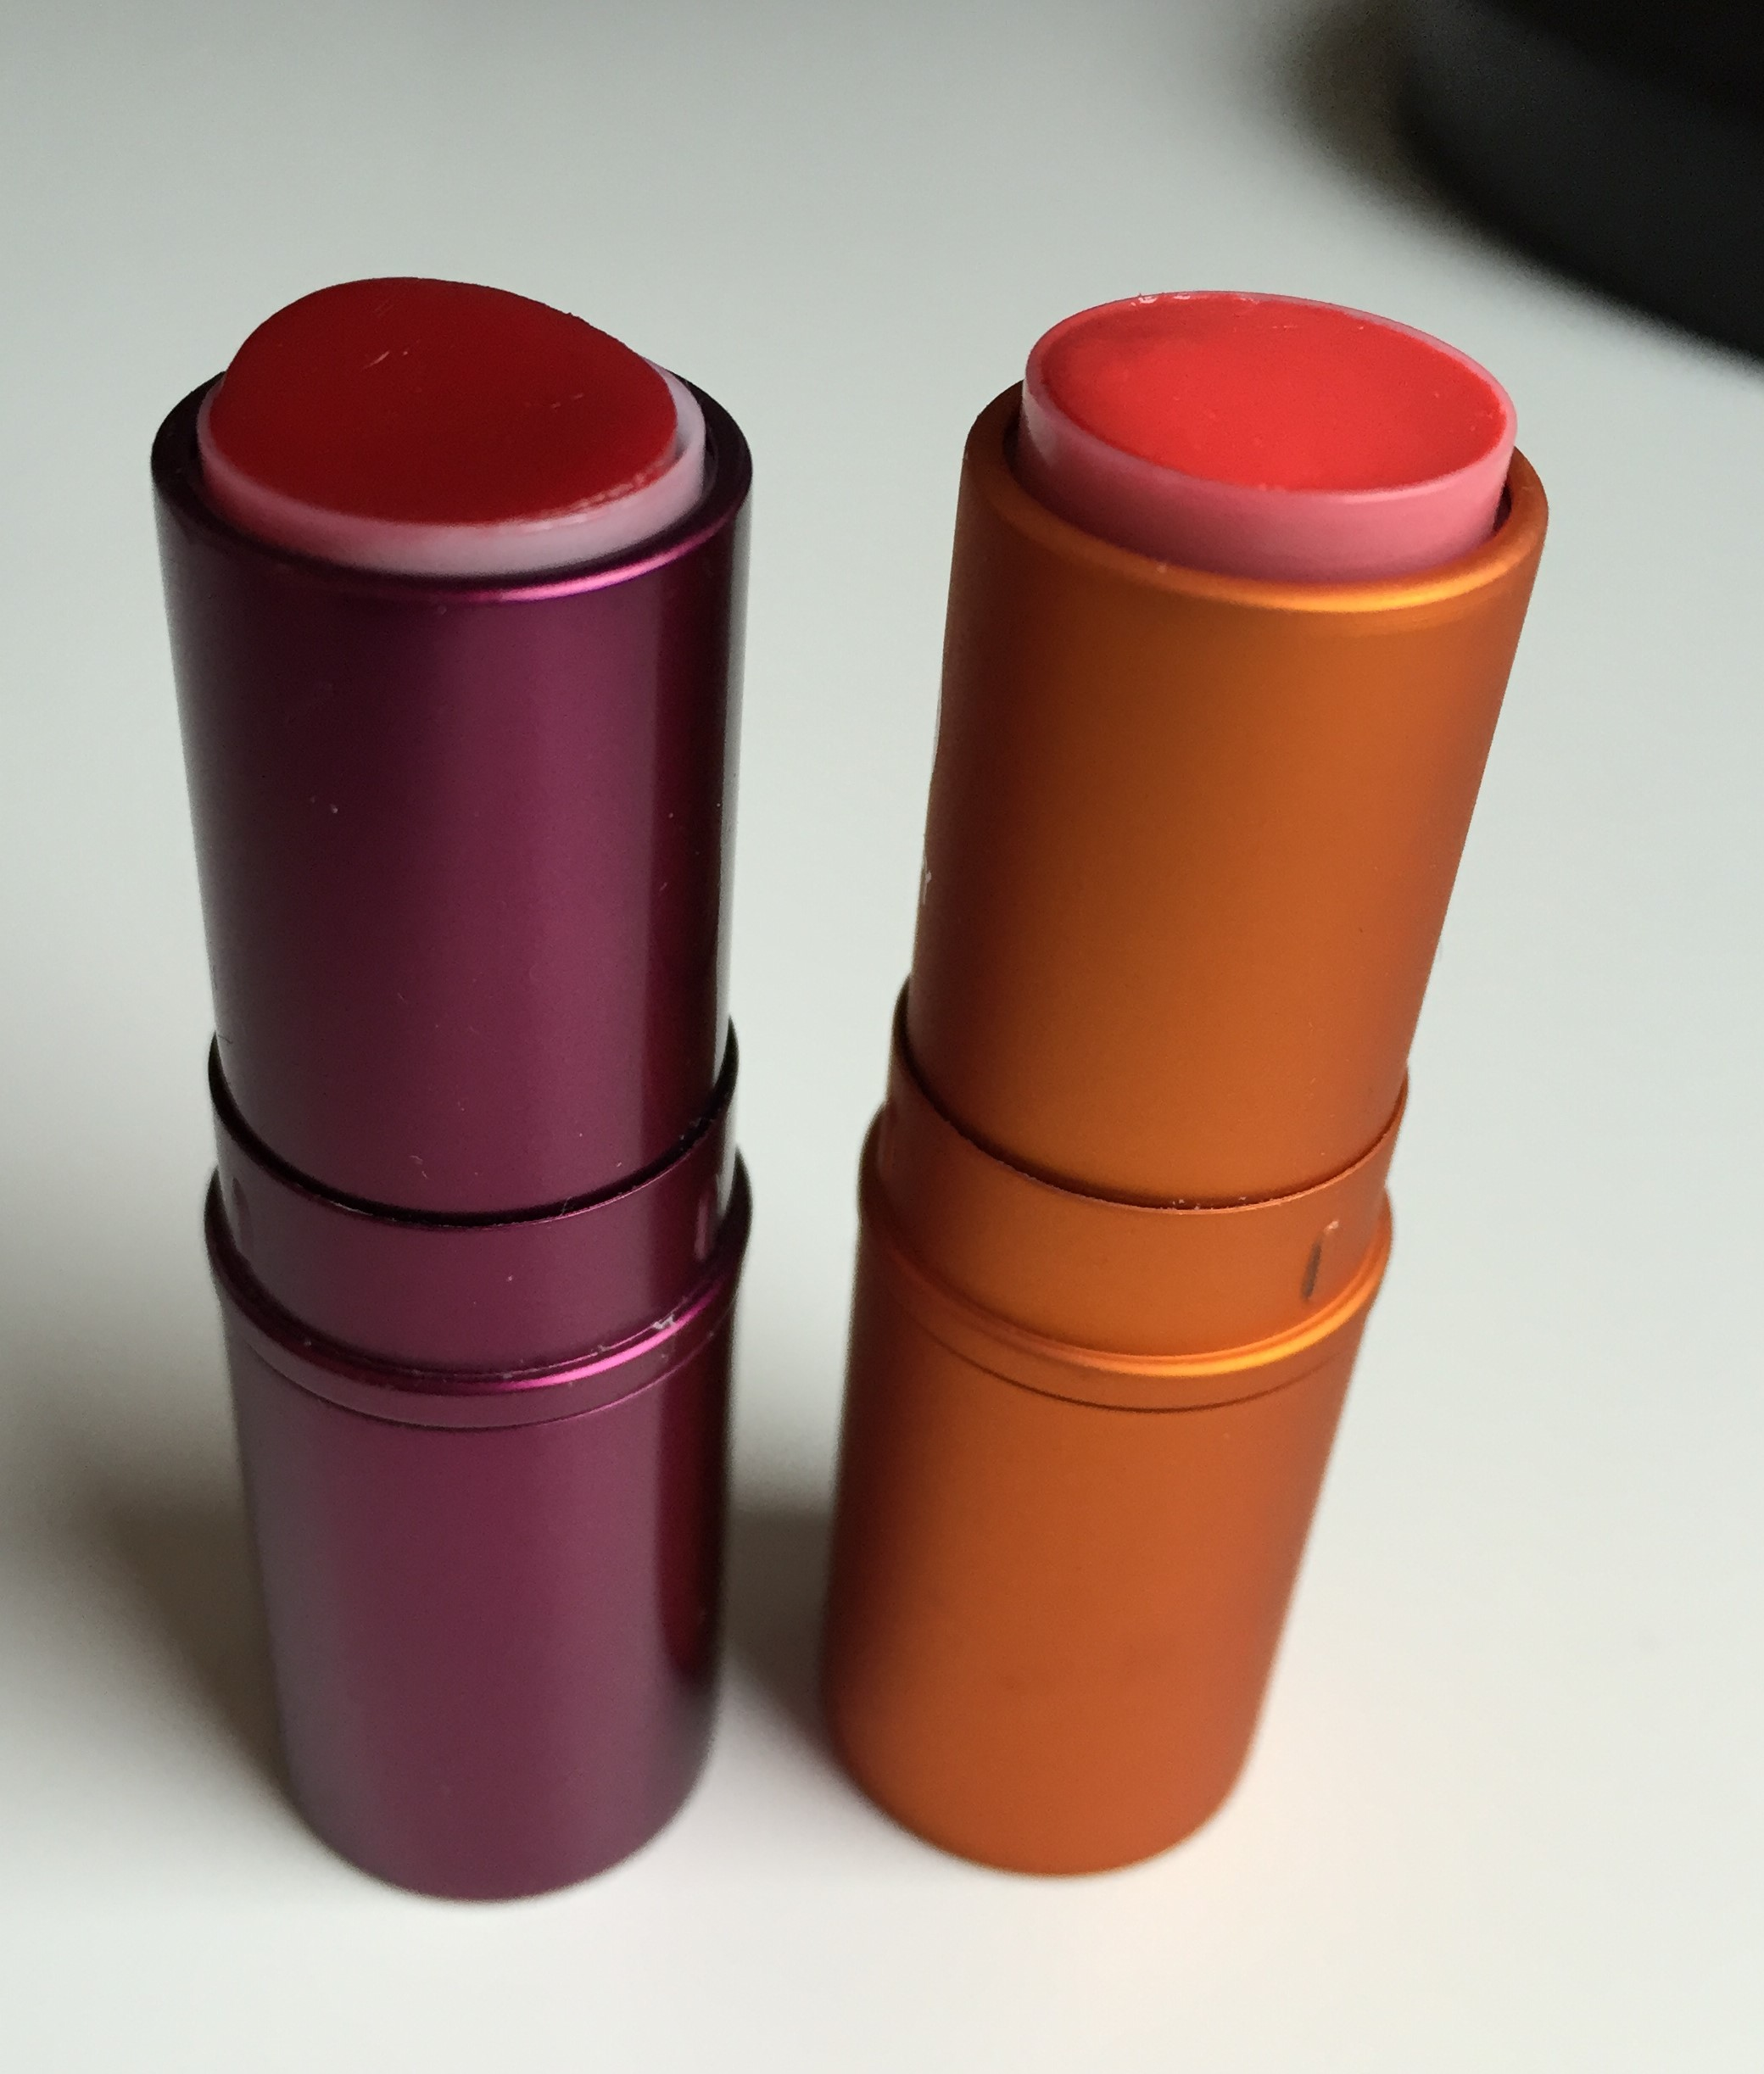 Pair of finished lipsticks